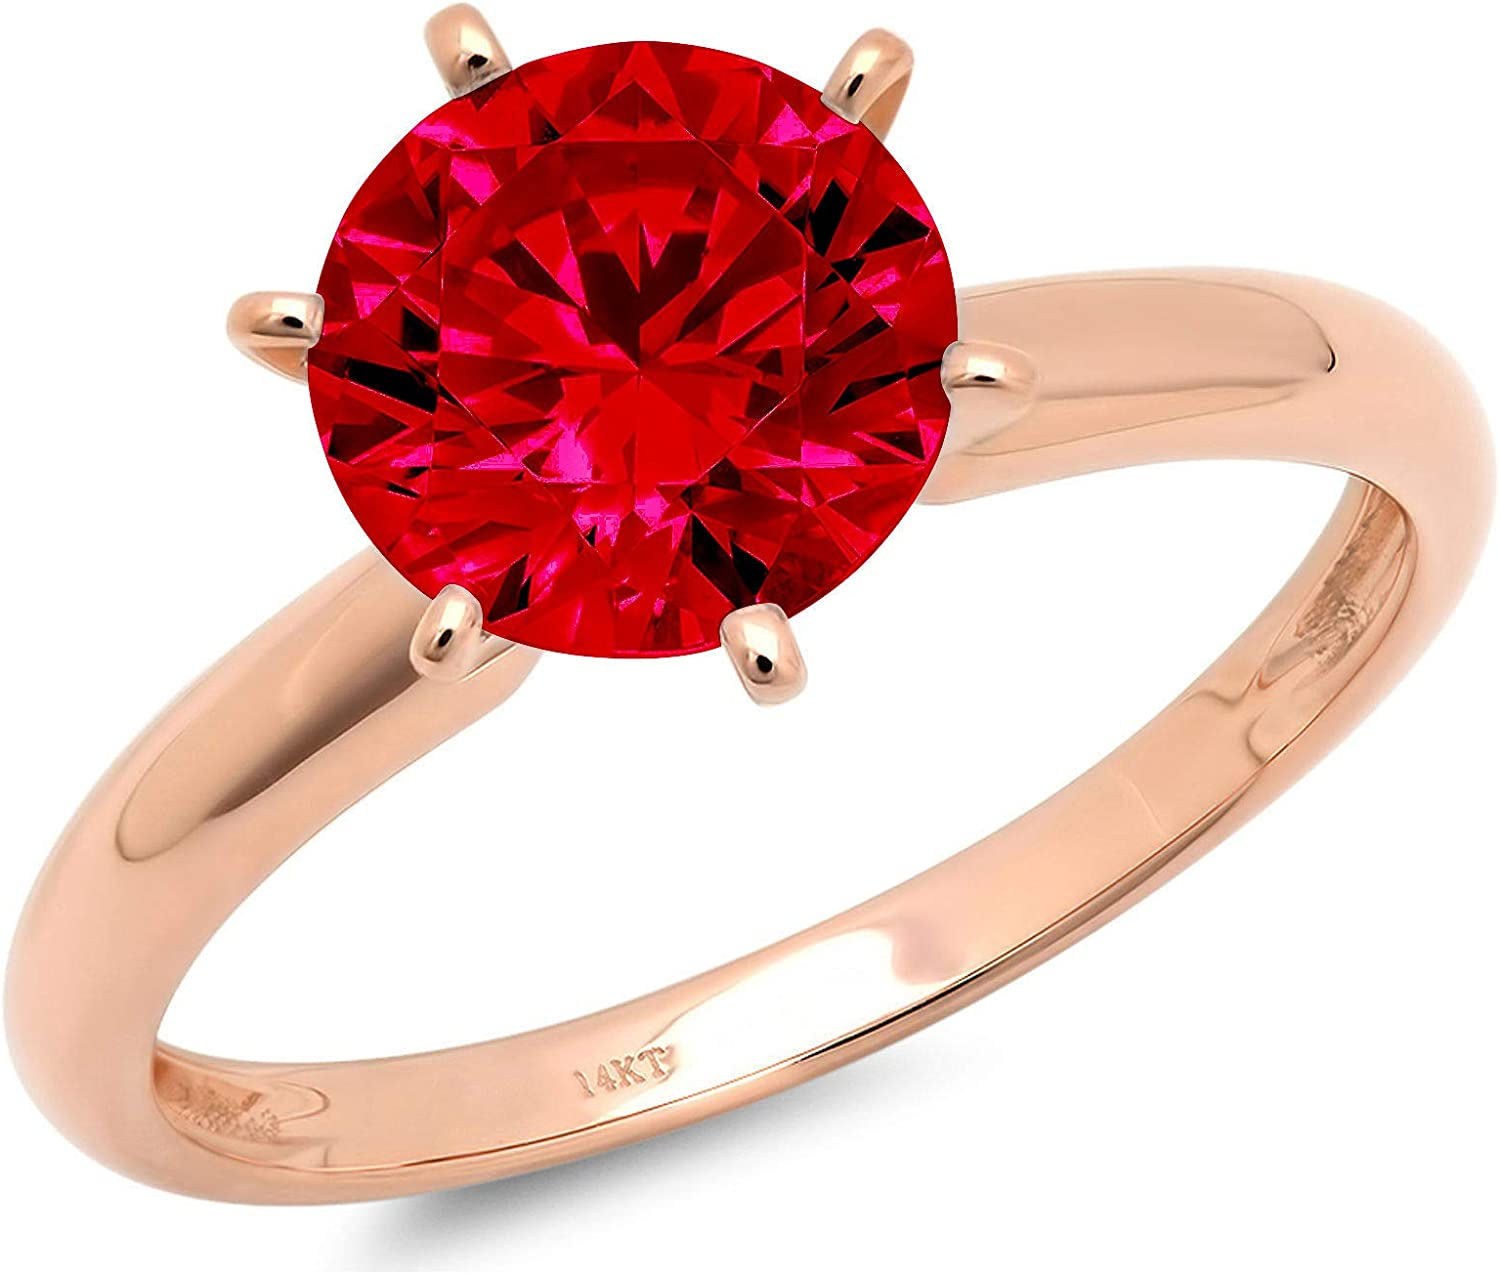 0.50 ct Brilliant Round Cut Solitaire Flawless Simulated CZ Red Ruby Ideal VVS1 6-Prong Engagement Wedding Bridal Promise Anniversary Designer Ring in Solid 14k rose Gold for Women